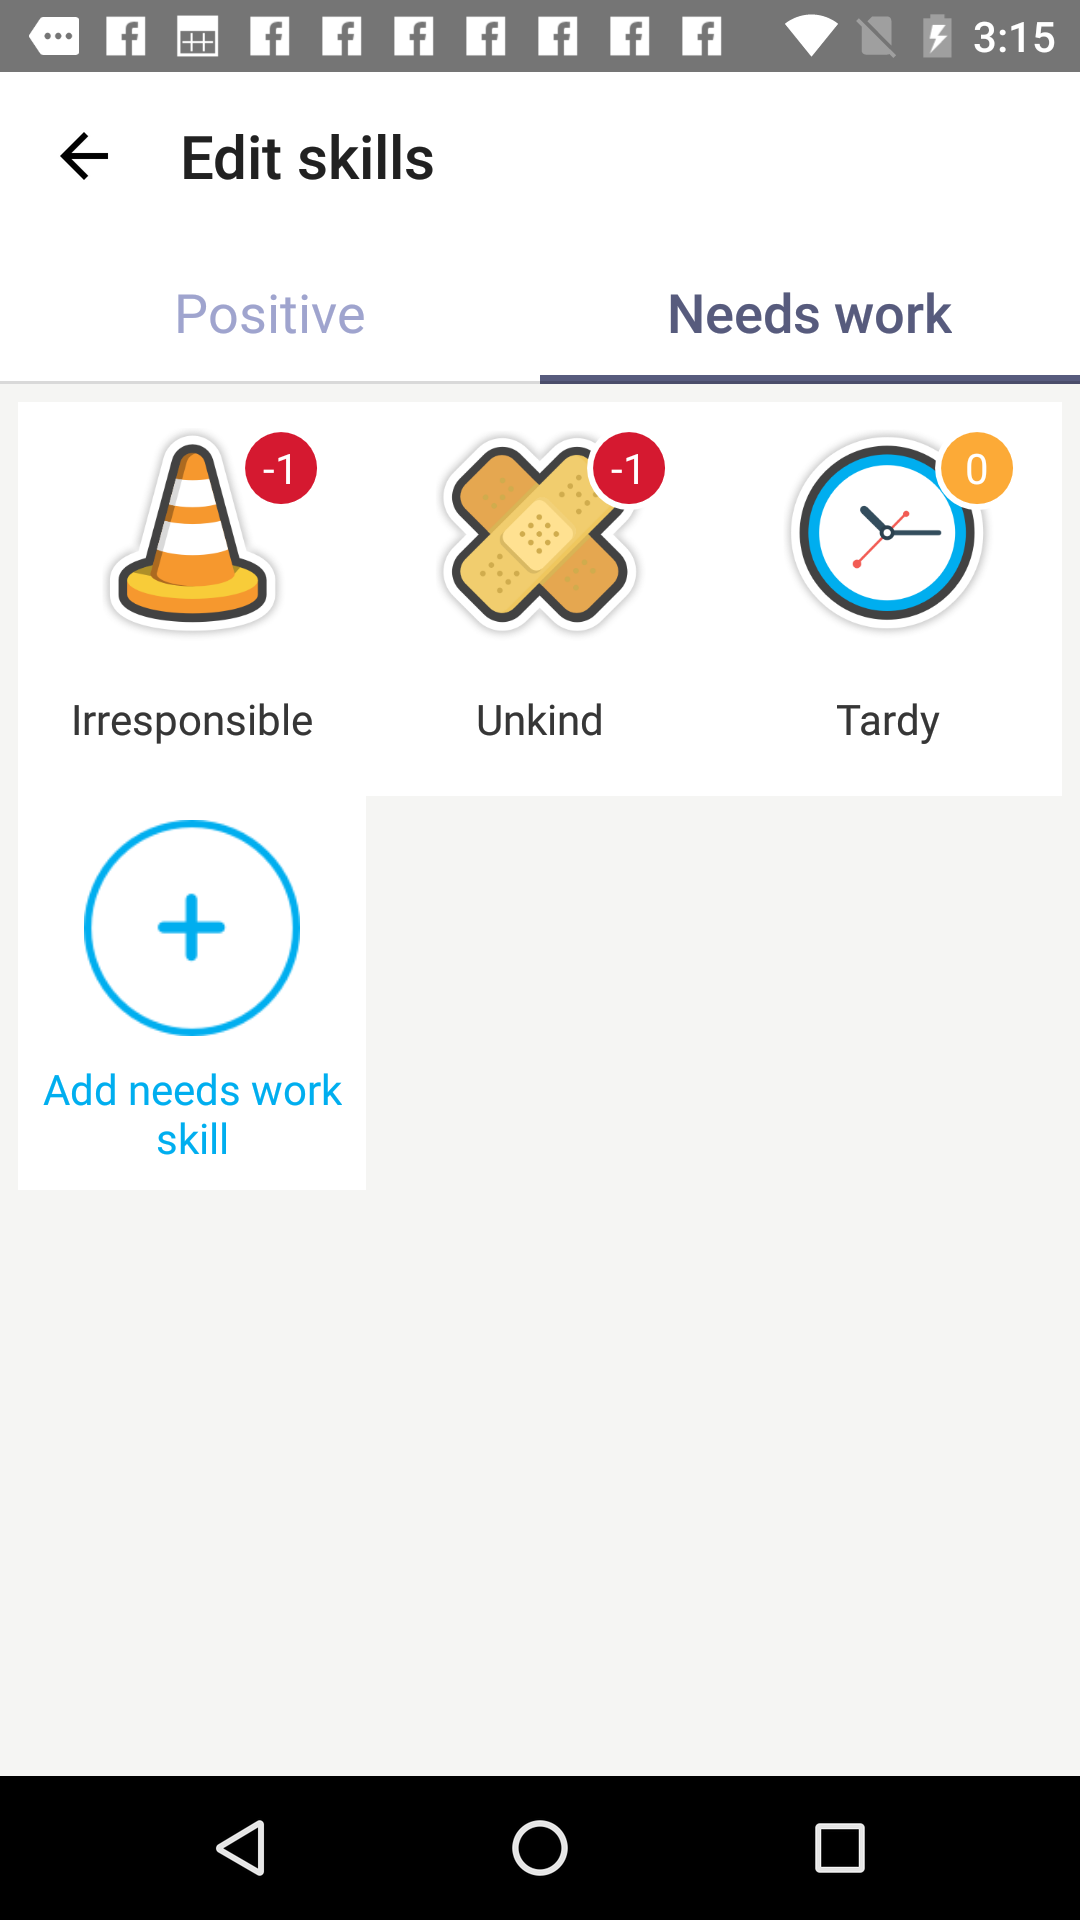 how to create and give zero point feedback classdojo helpdesk note zero point feedback that falls in the needs work category will be designated by a yellow point bubble to distinguish it from any negative point